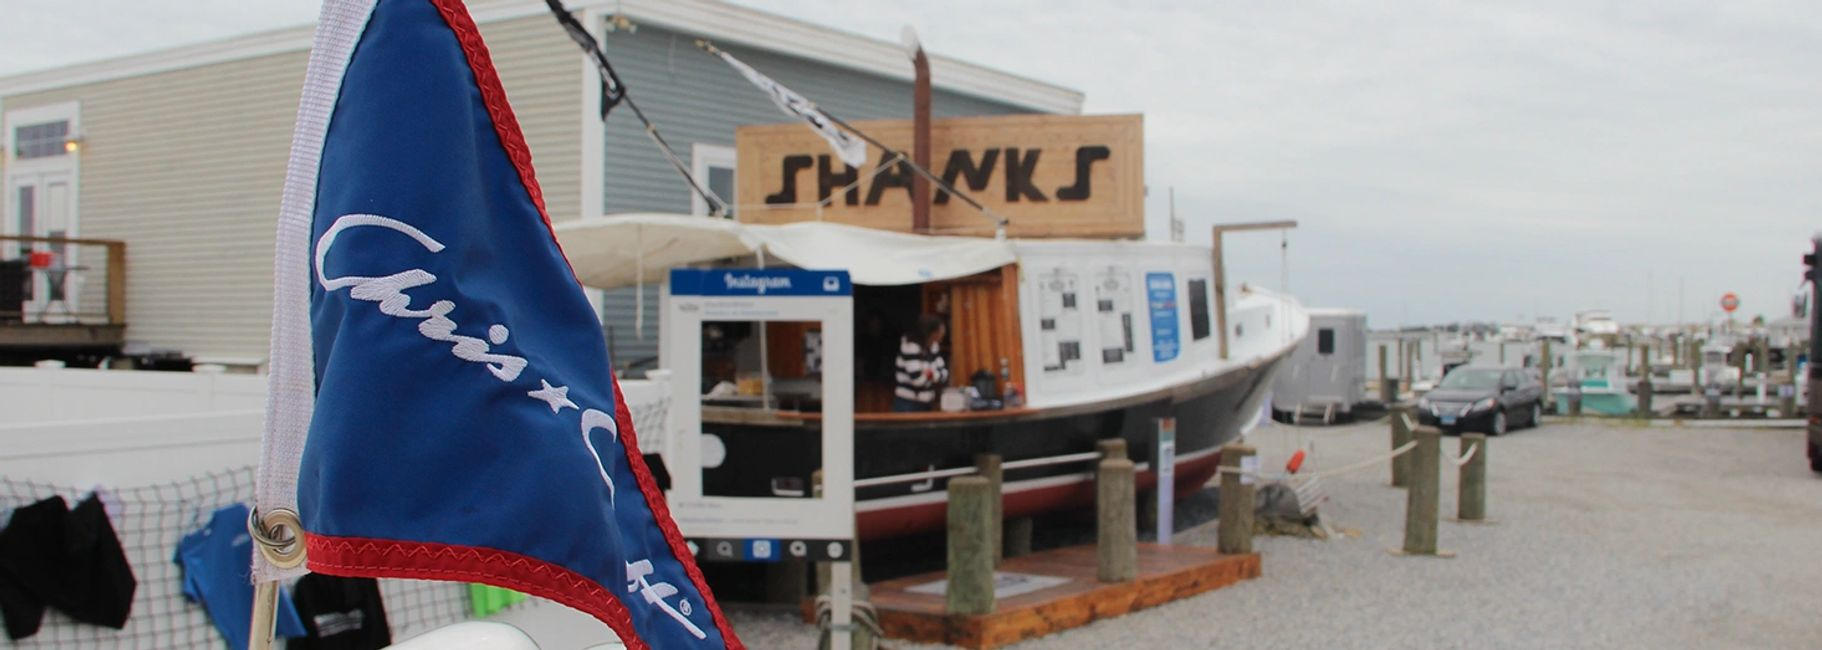 Chris Craft featured in front of Shanks Waterfront Dining in Clinton, CT